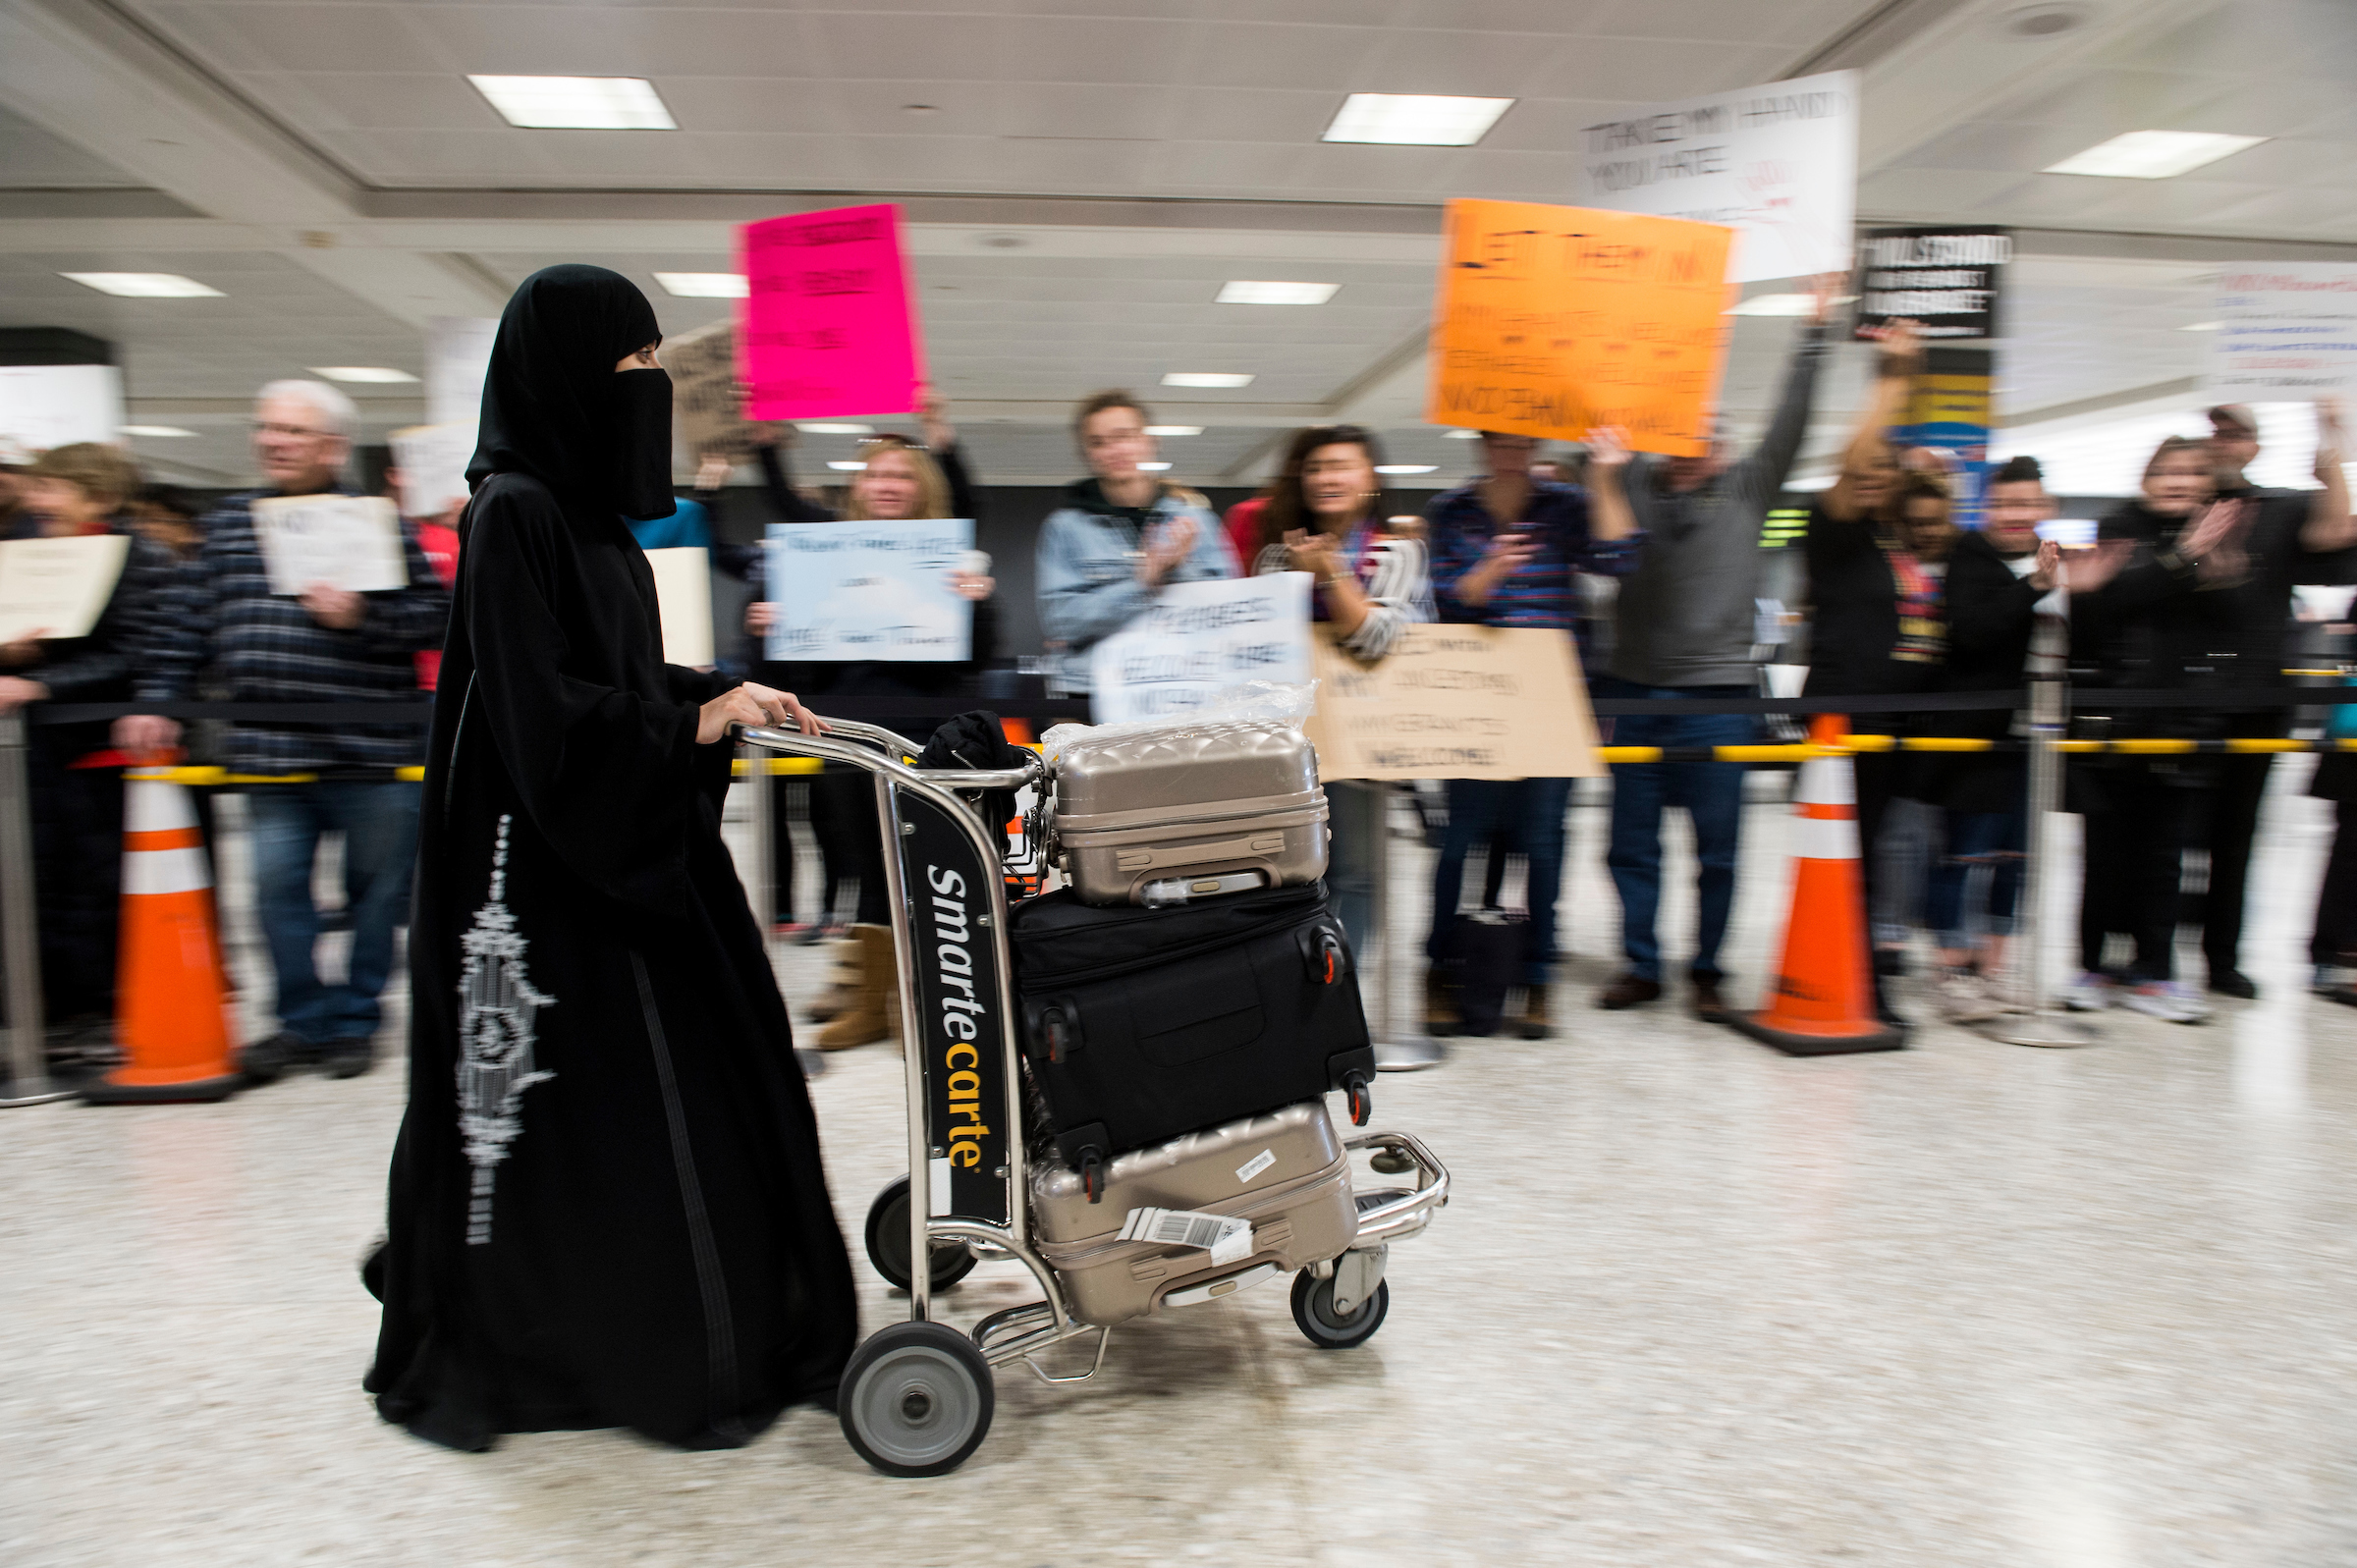 UNITED STATES - JANUARY 29: Passengers from a Saudi Arabian Airlines flight from Jeddah are greeted by protesters as they arrive at Dulles International Airport in Virginia on Sunday, Jan. 29, 2017. Protests erupted at airports around the country following President Trump's executive order restricting travel from several Islamic countries. (Photo By Bill Clark/CQ Roll Call/Pool)